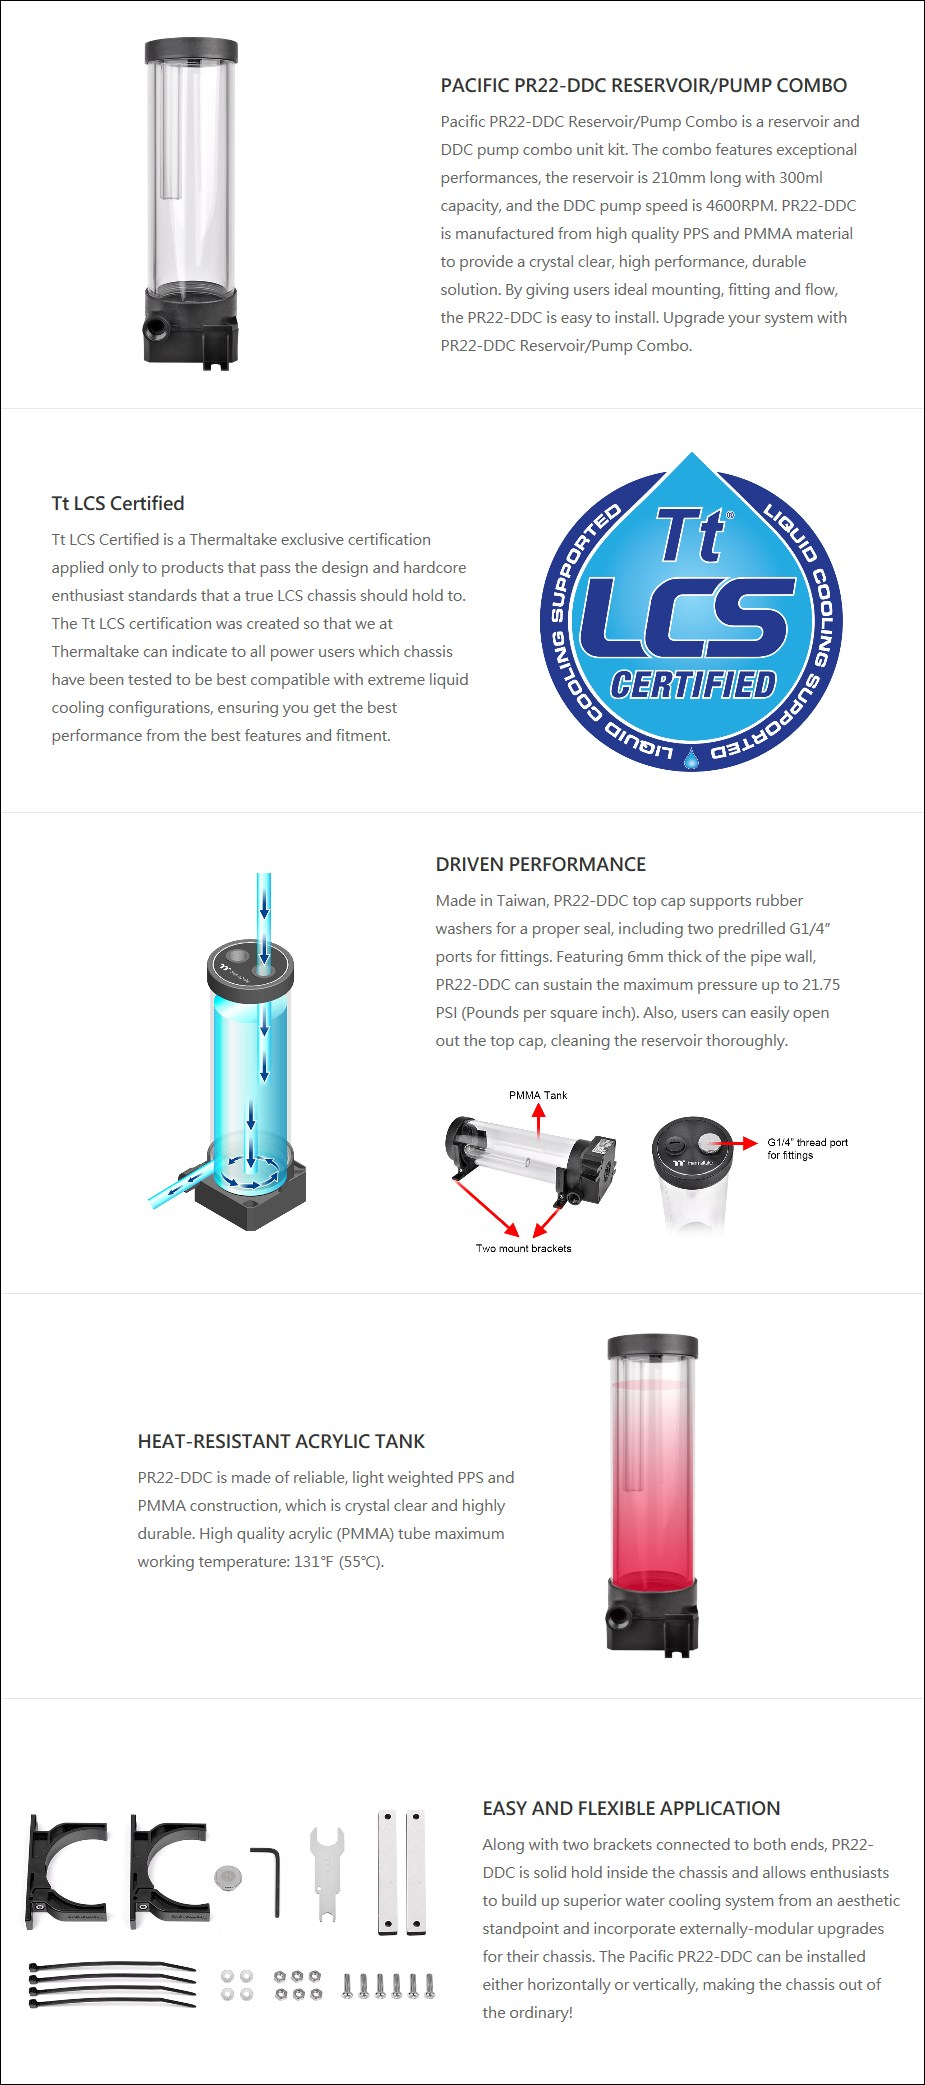 Thermaltake Pacific PR22-DDC Reservoir and Pump Combo - Overview 1